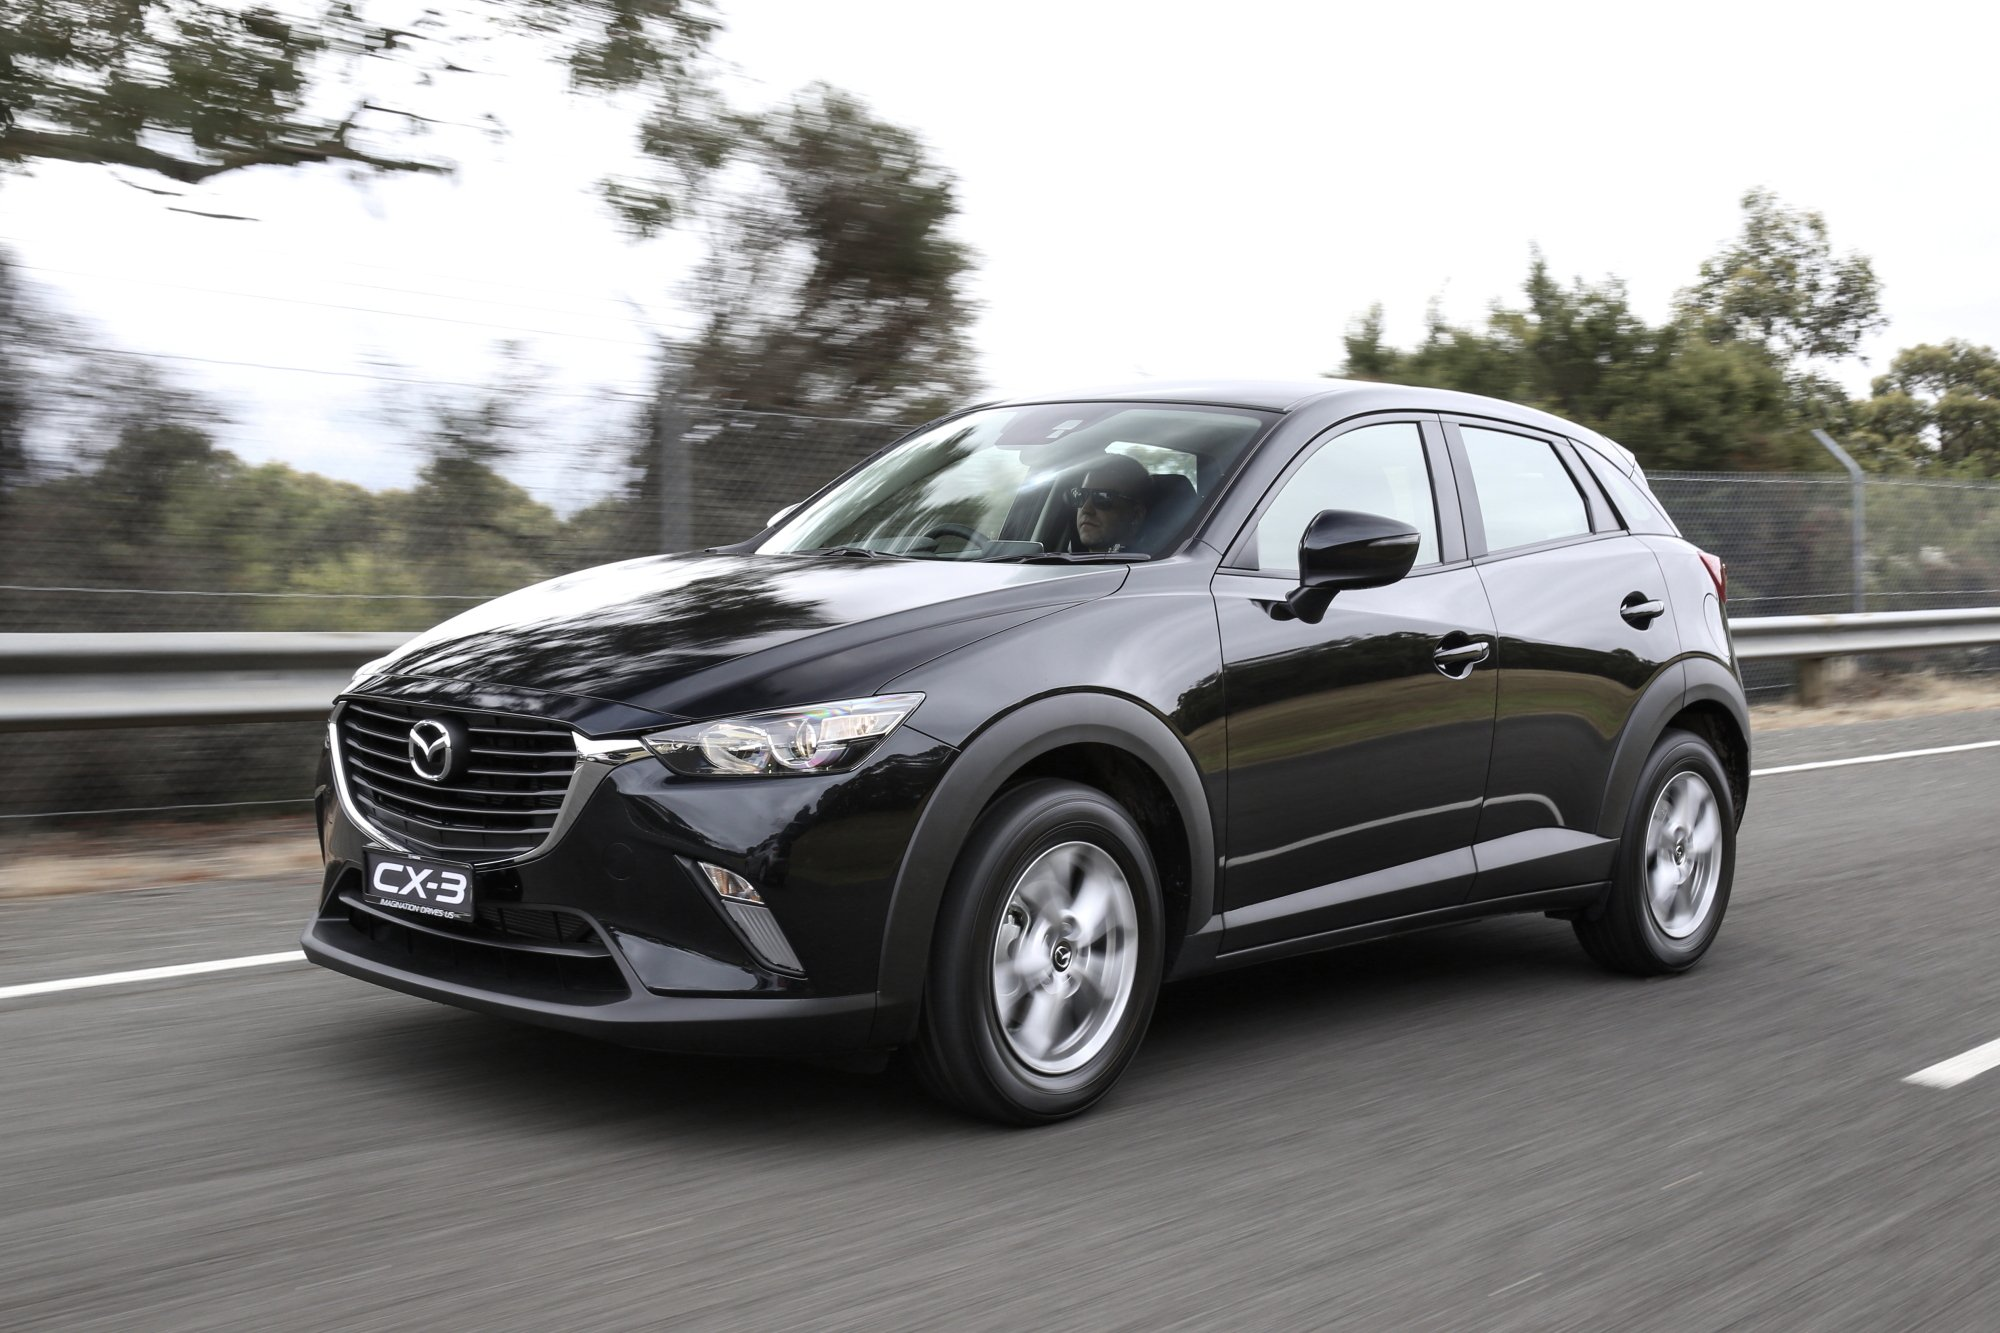 2015 mazda cx 3 review photos caradvice. Black Bedroom Furniture Sets. Home Design Ideas